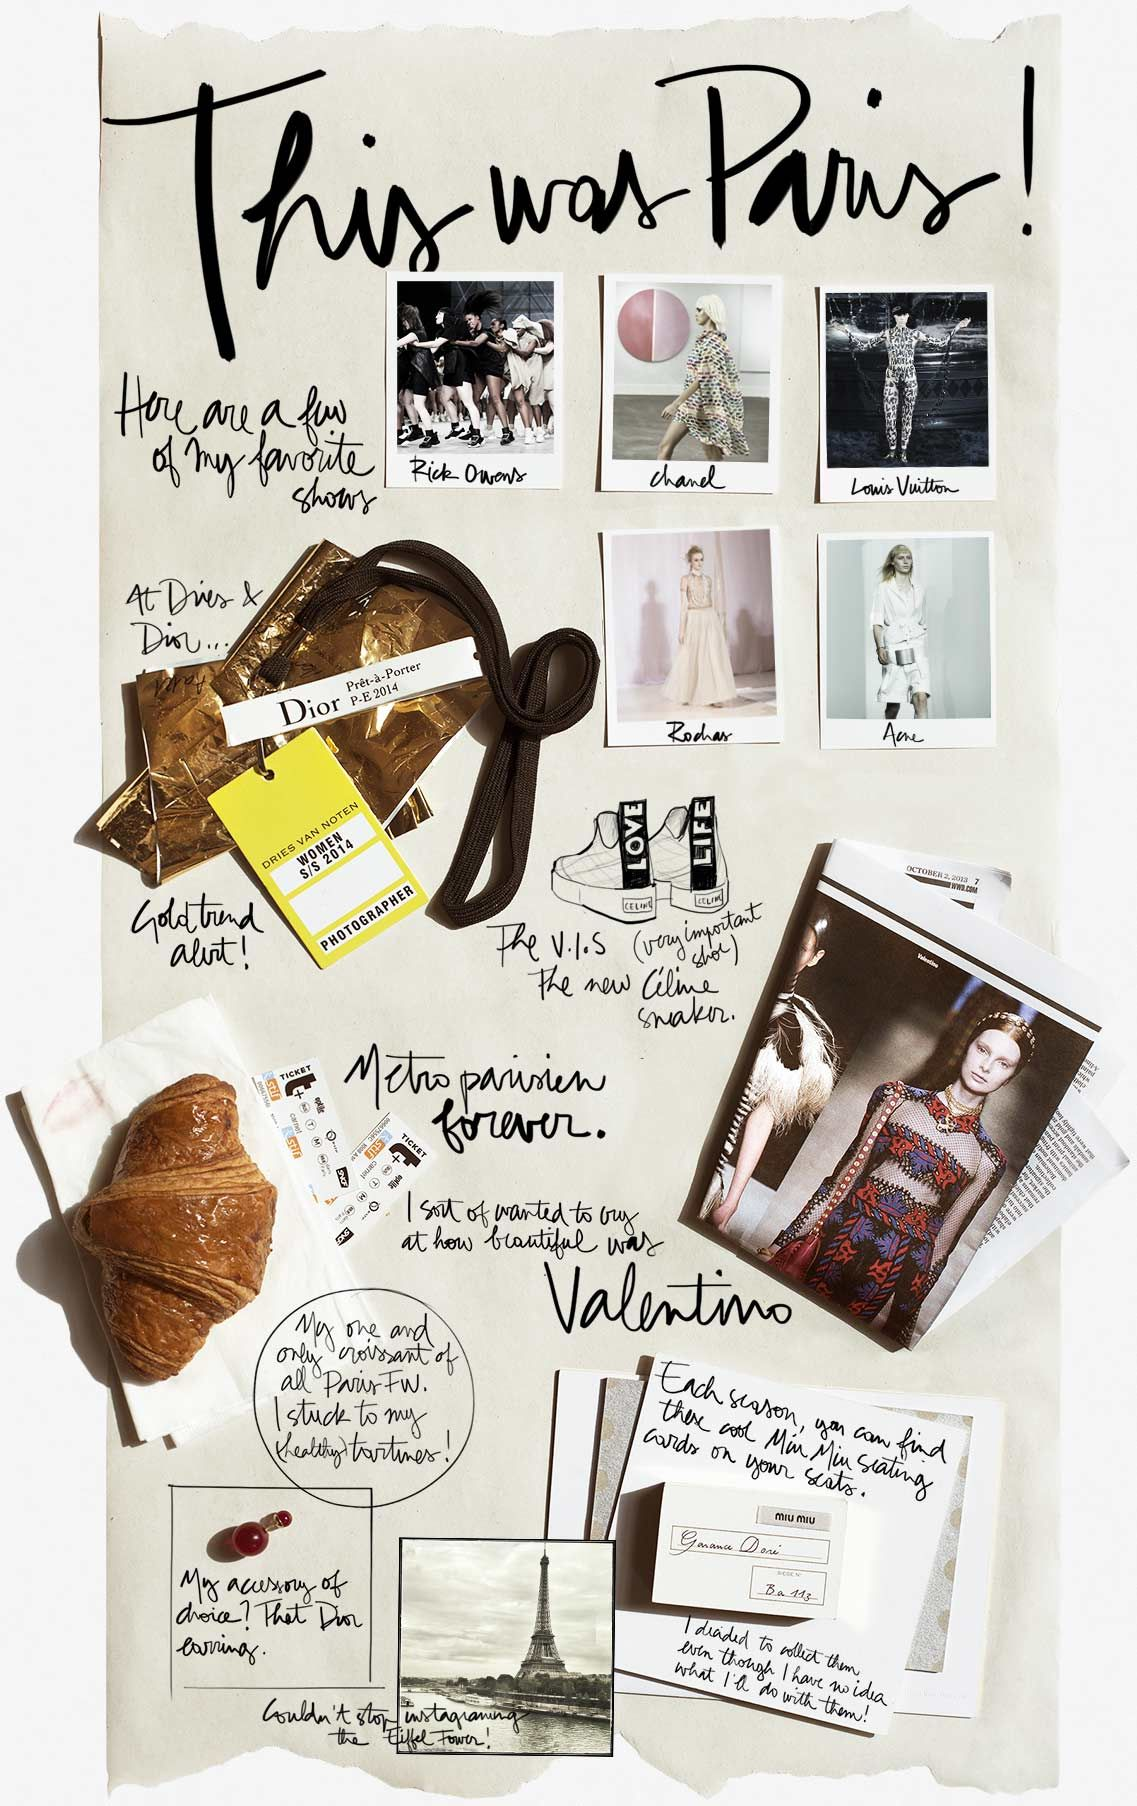 ASH A visual journal of a different format, this collation of representative tokens, images and other souvenir memorabilia is displayed openly on a single length of paper, with roughly scribbled annotations which succinctly give both personal and literal insight into the purpose of each item.